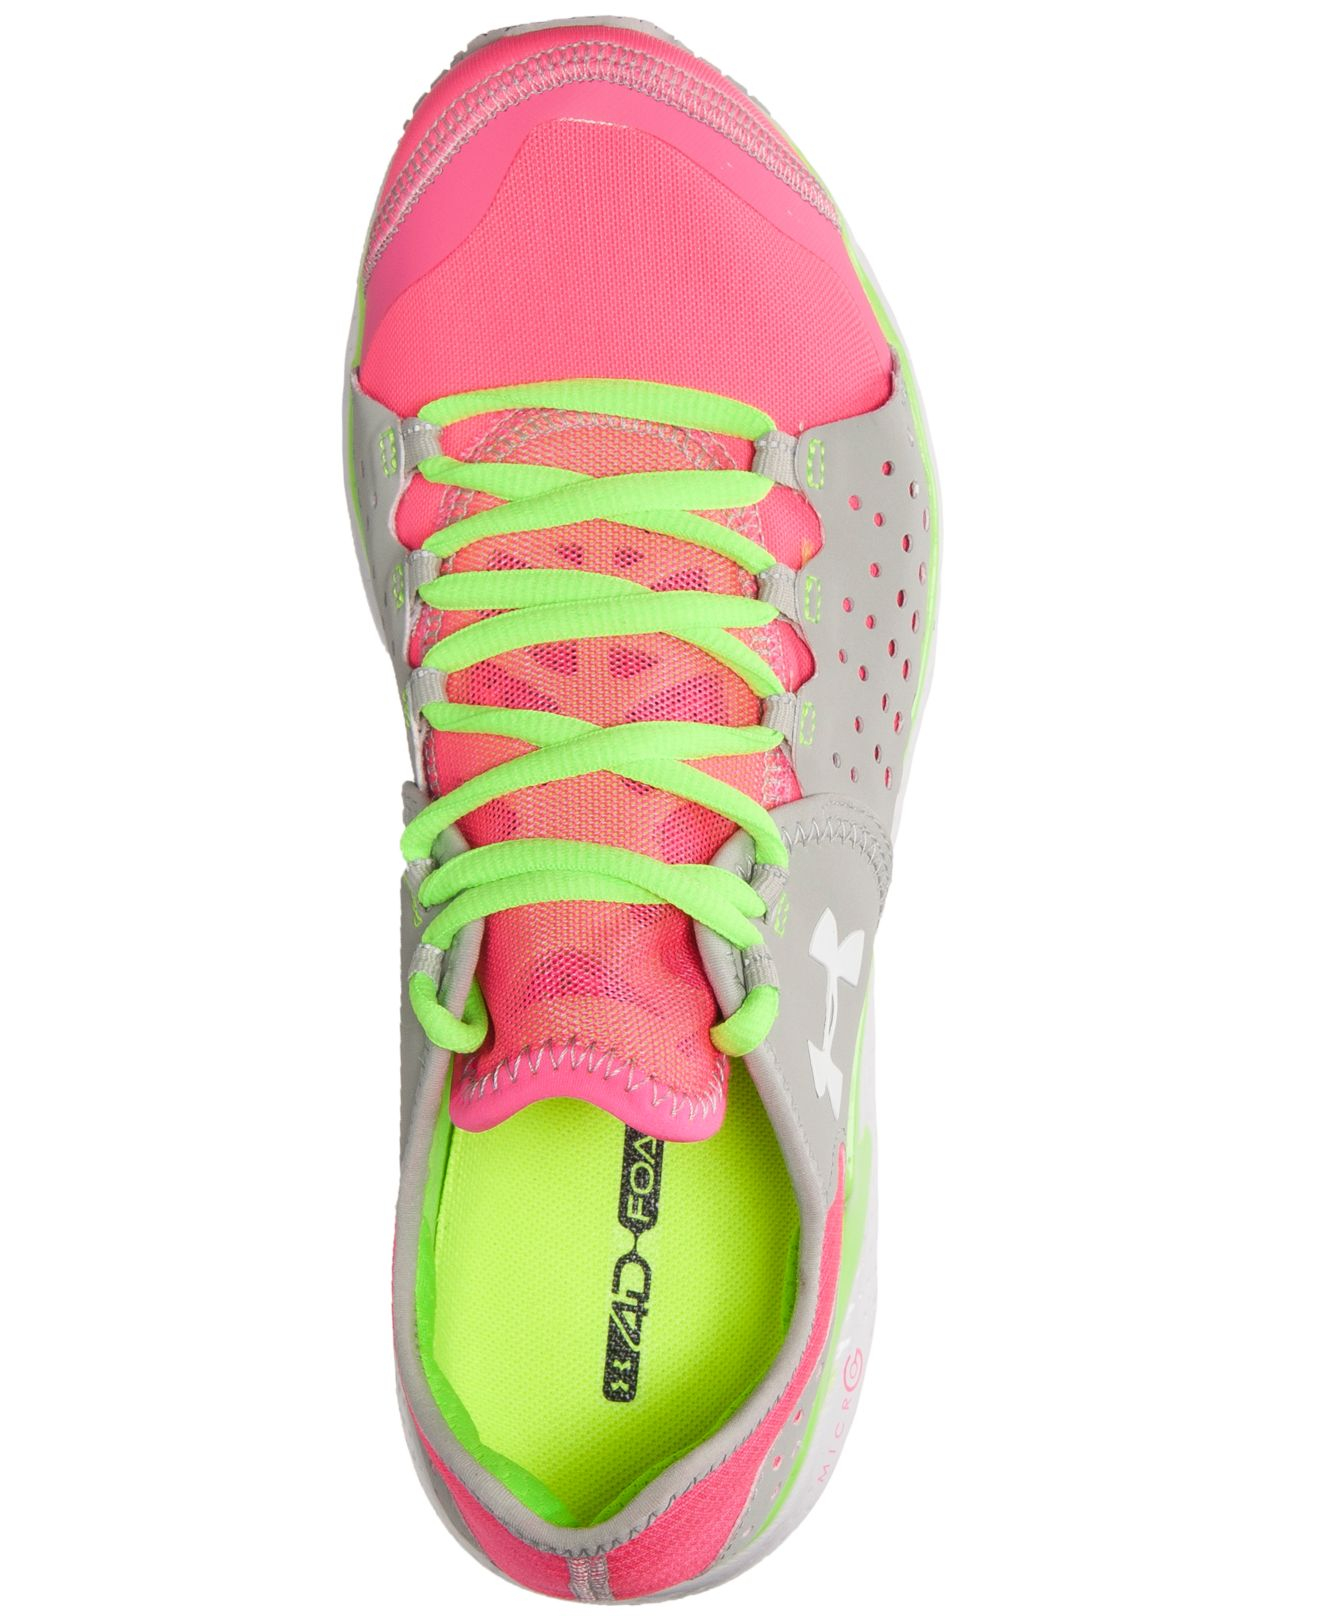 83cb8cf574f6 Lyst - Under Armour Women s Micro G Mantis Running Sneakers From Finish  Line in Pink